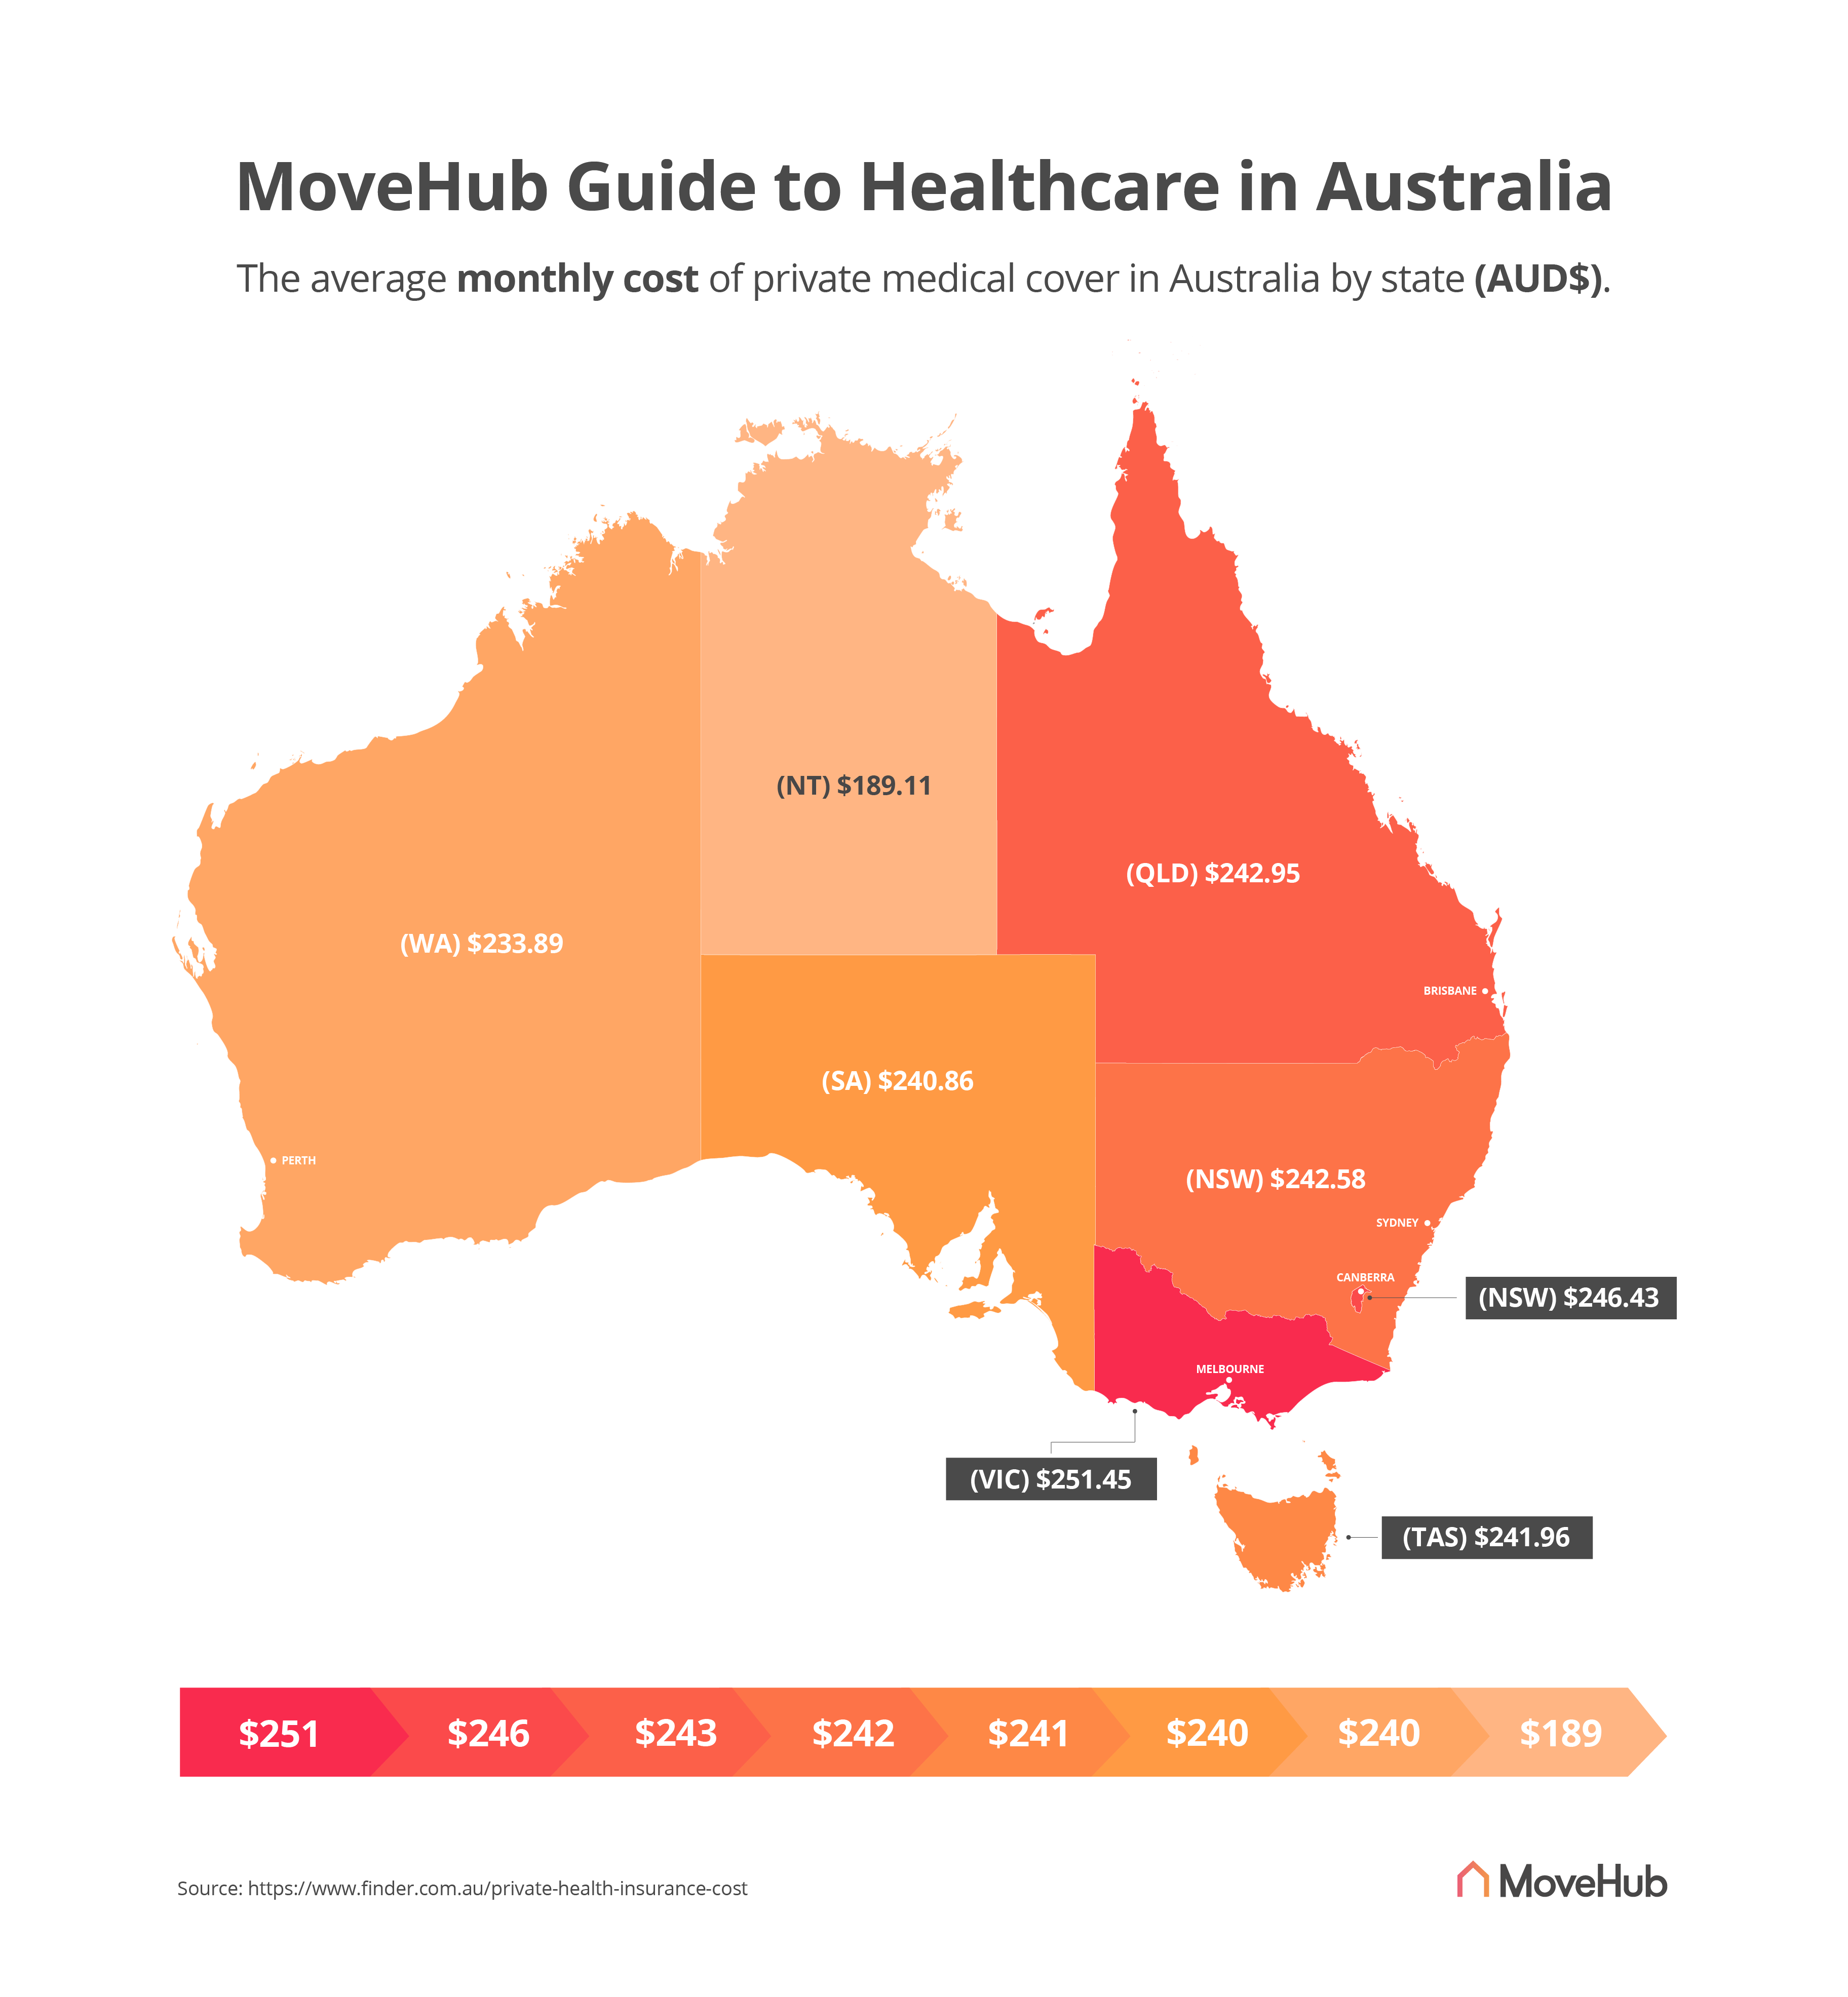 map showing health insurance premiums by state in Australia